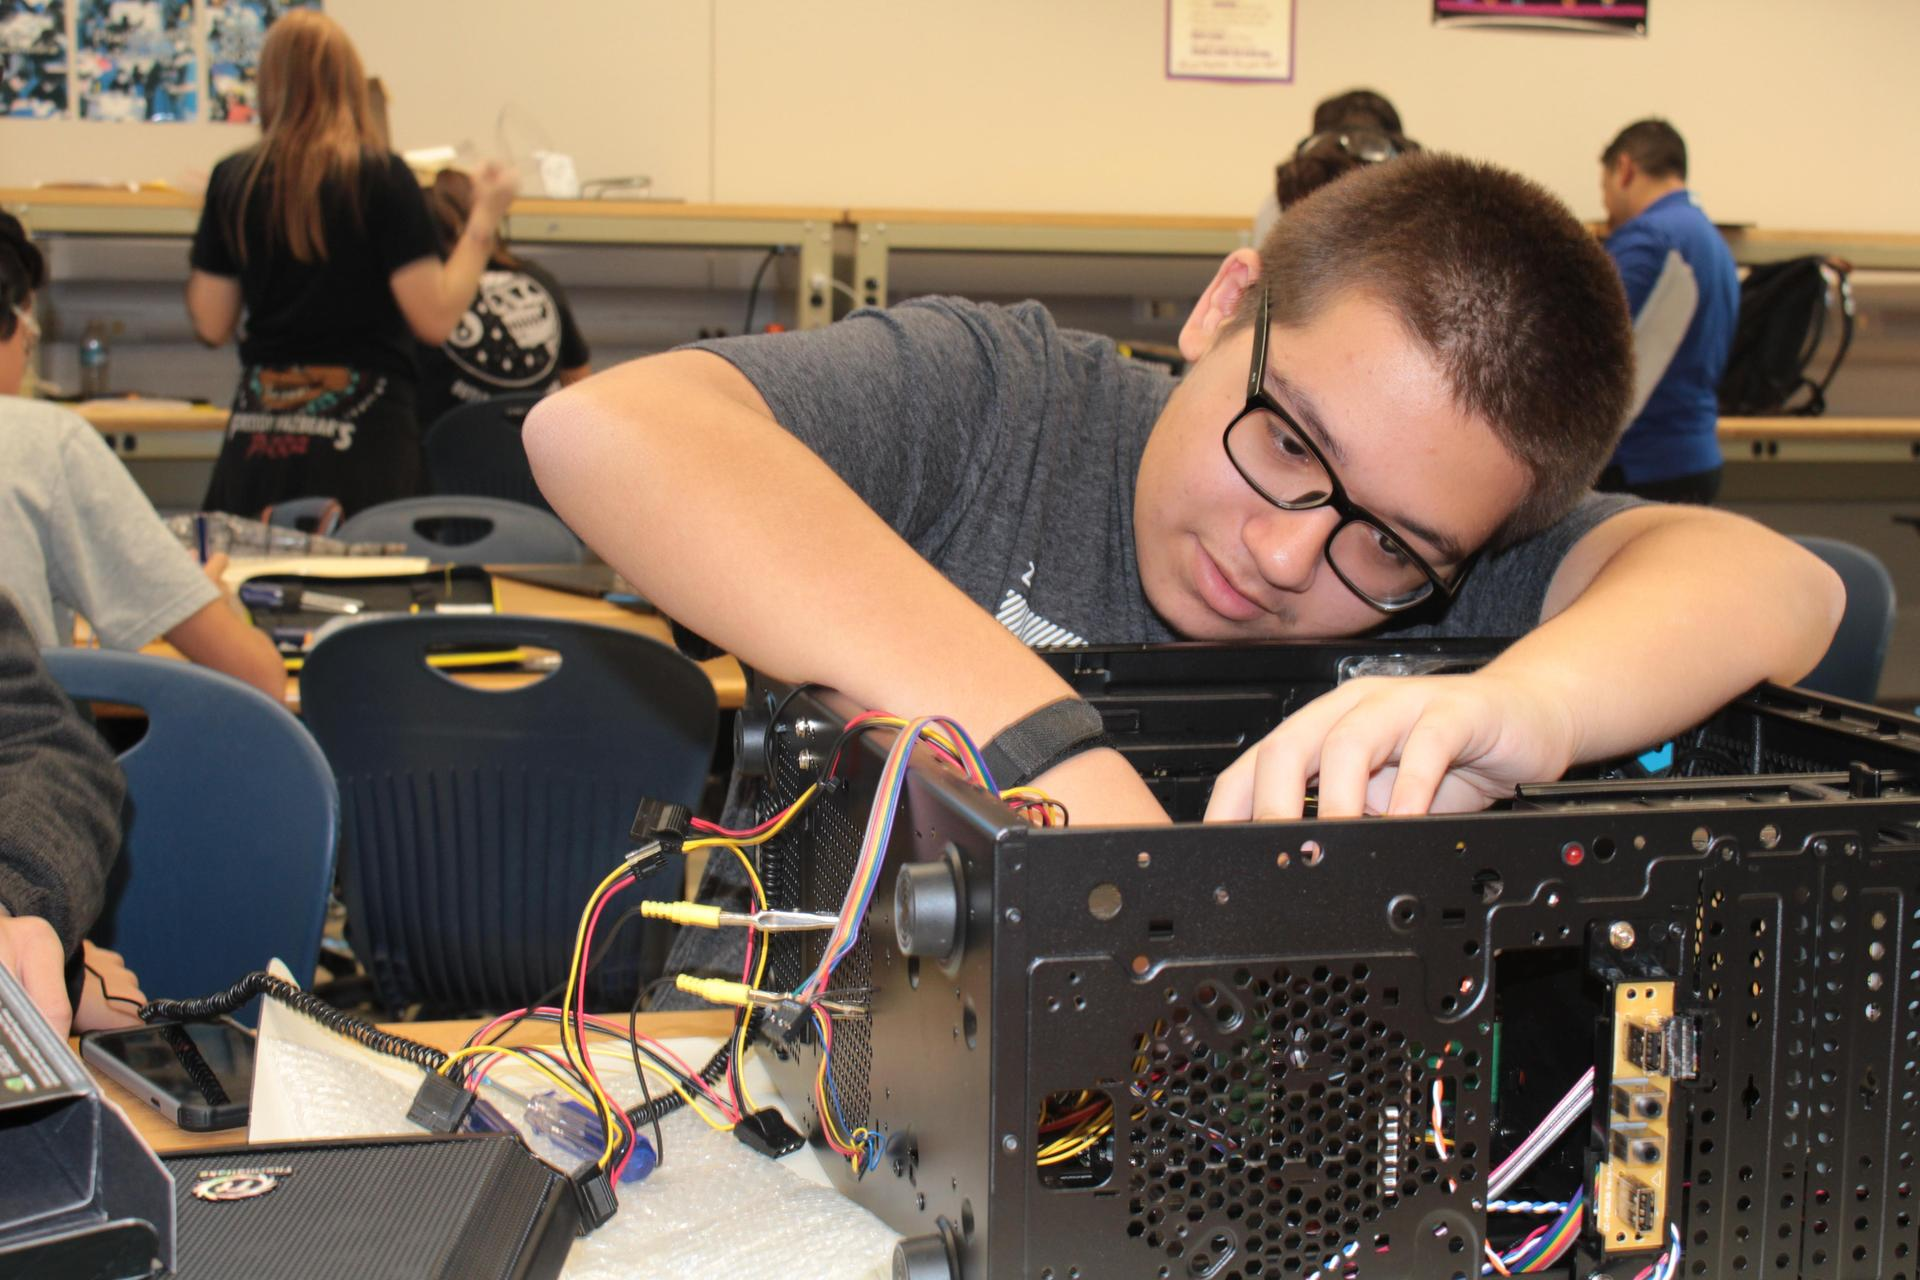 Student working on putting a PC tower back together